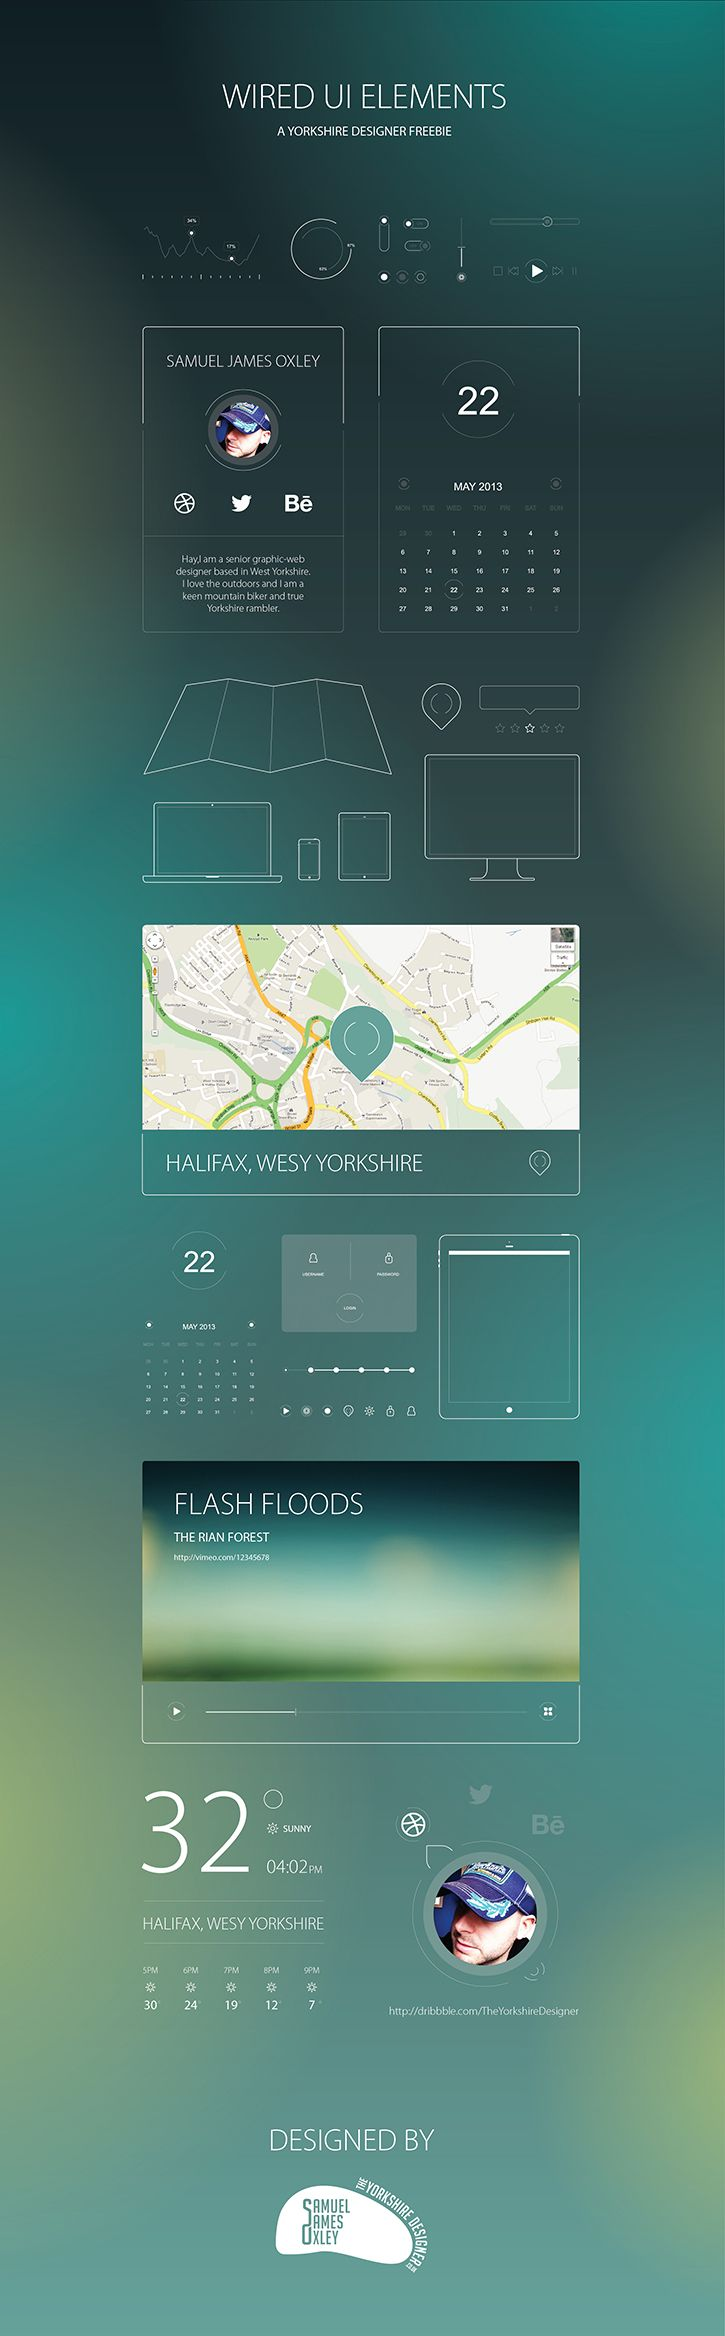 Wired UI Elements